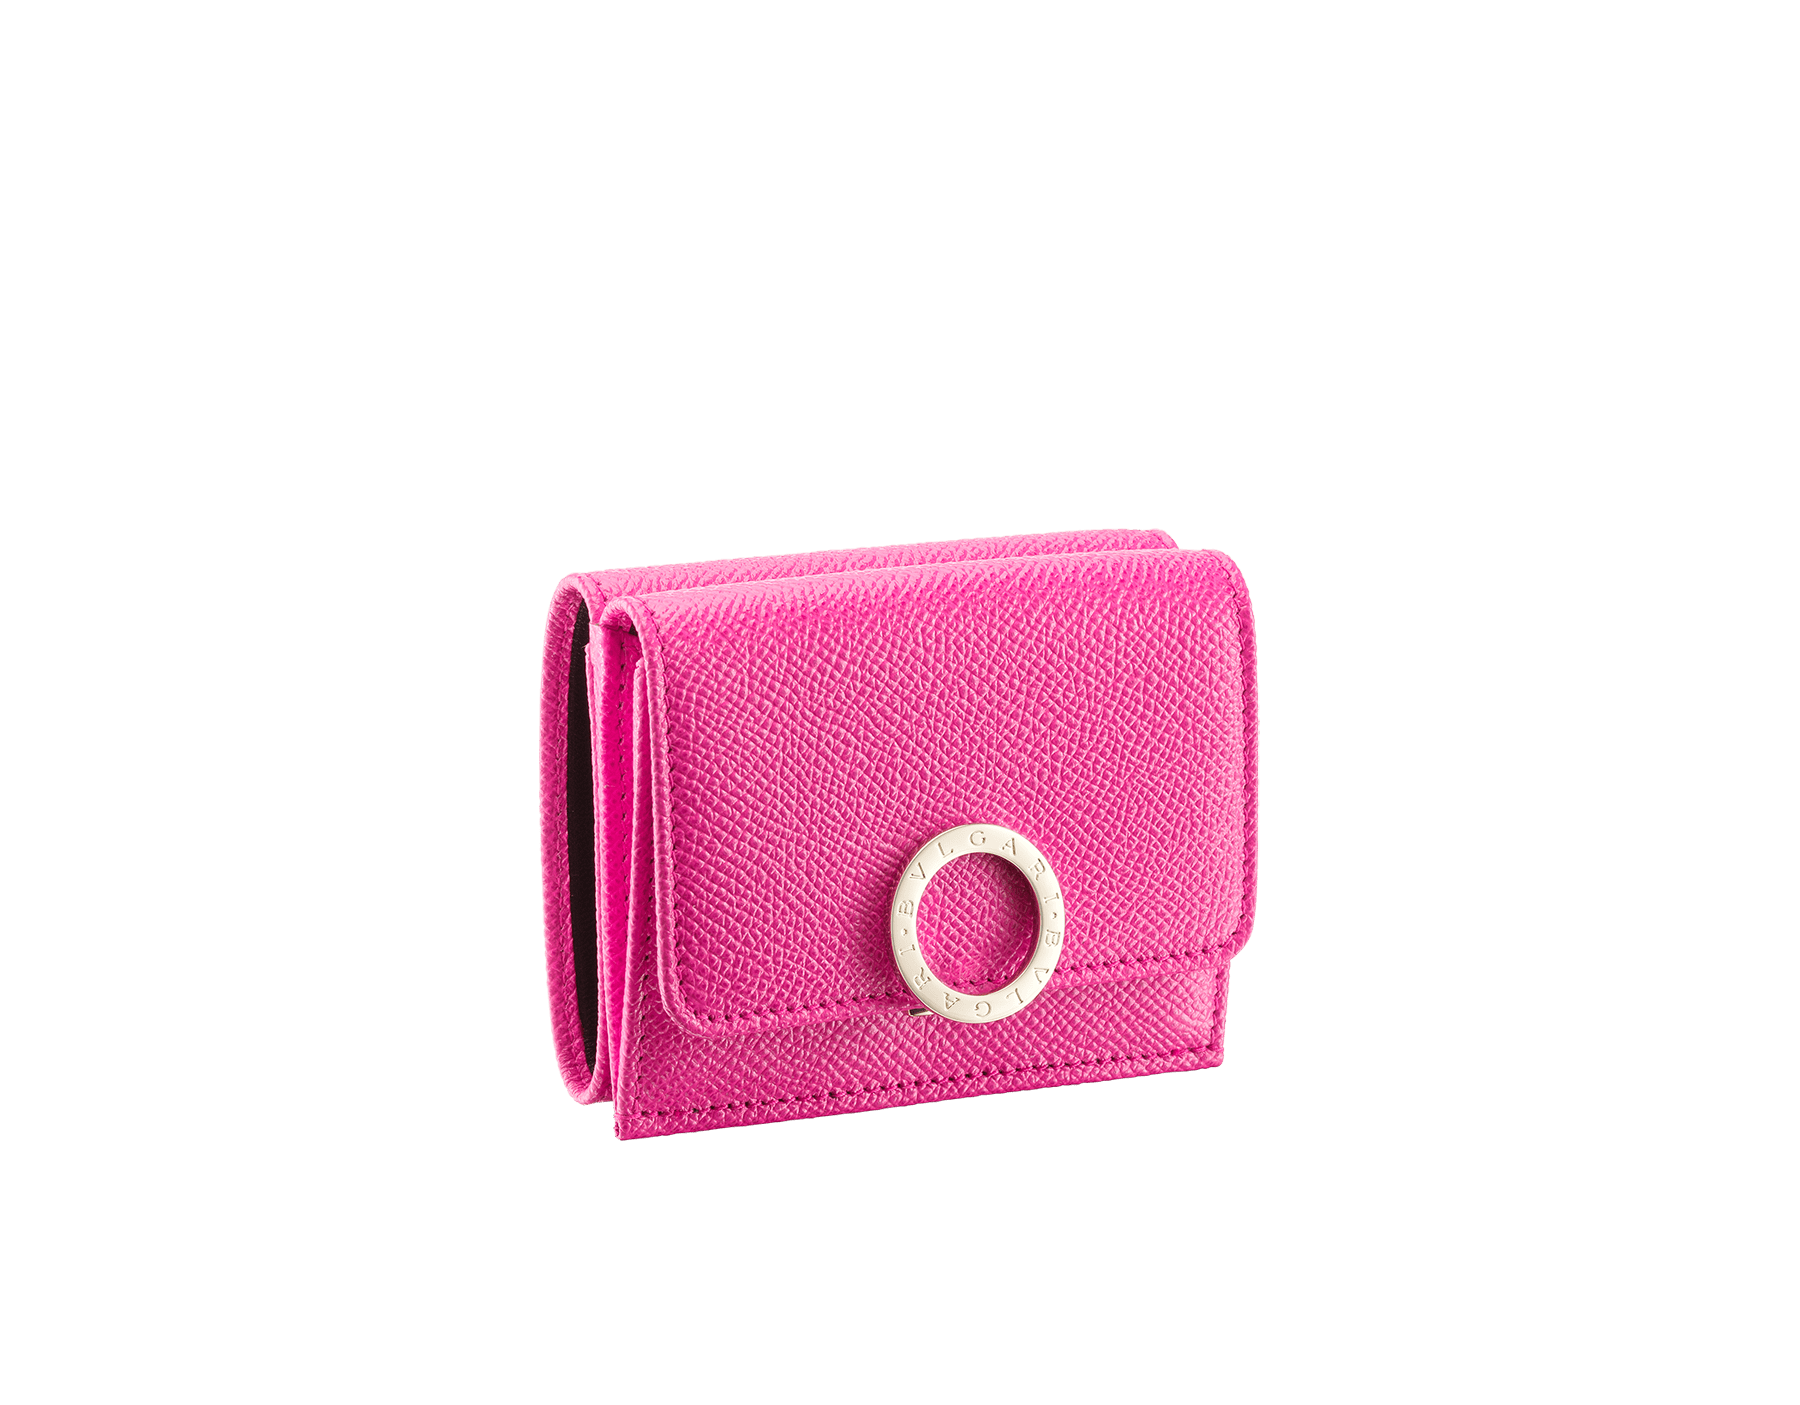 BVLGARI BVLGARI super compact wallet in black grained calf leather and black nappa leather. Iconic logo closure clip in light gold plated brass. 579-MINICOMPACTa image 1